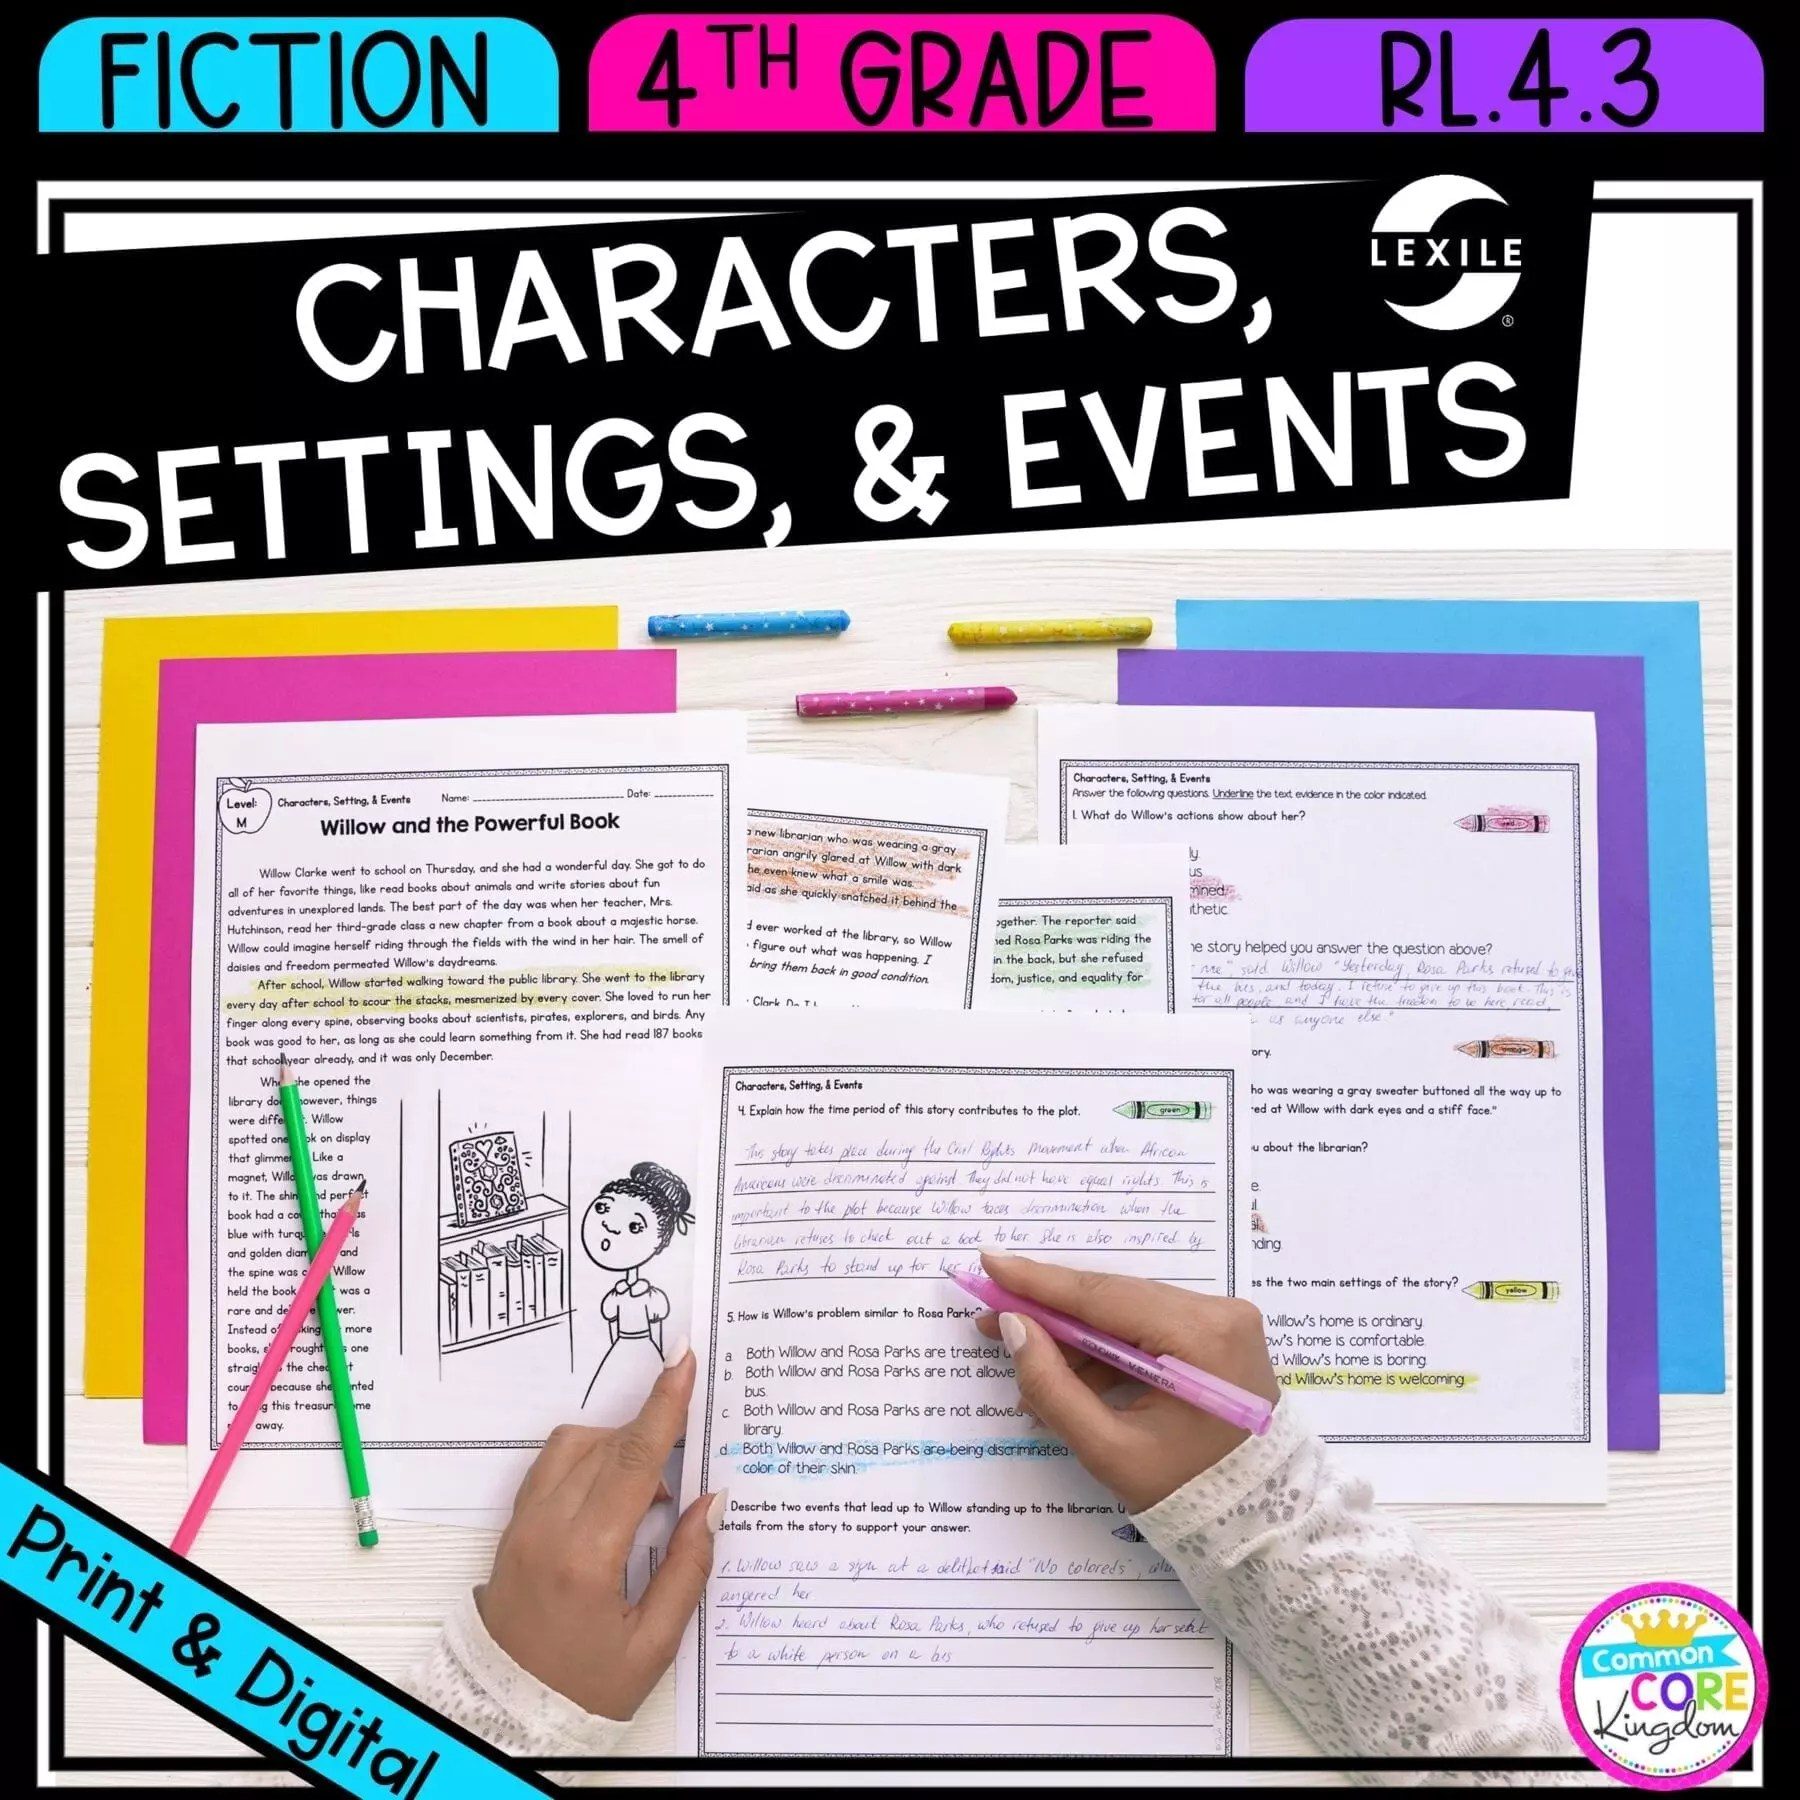 hight resolution of Character Settings Events in a Drama 4th Grade   Common Core Kingdom